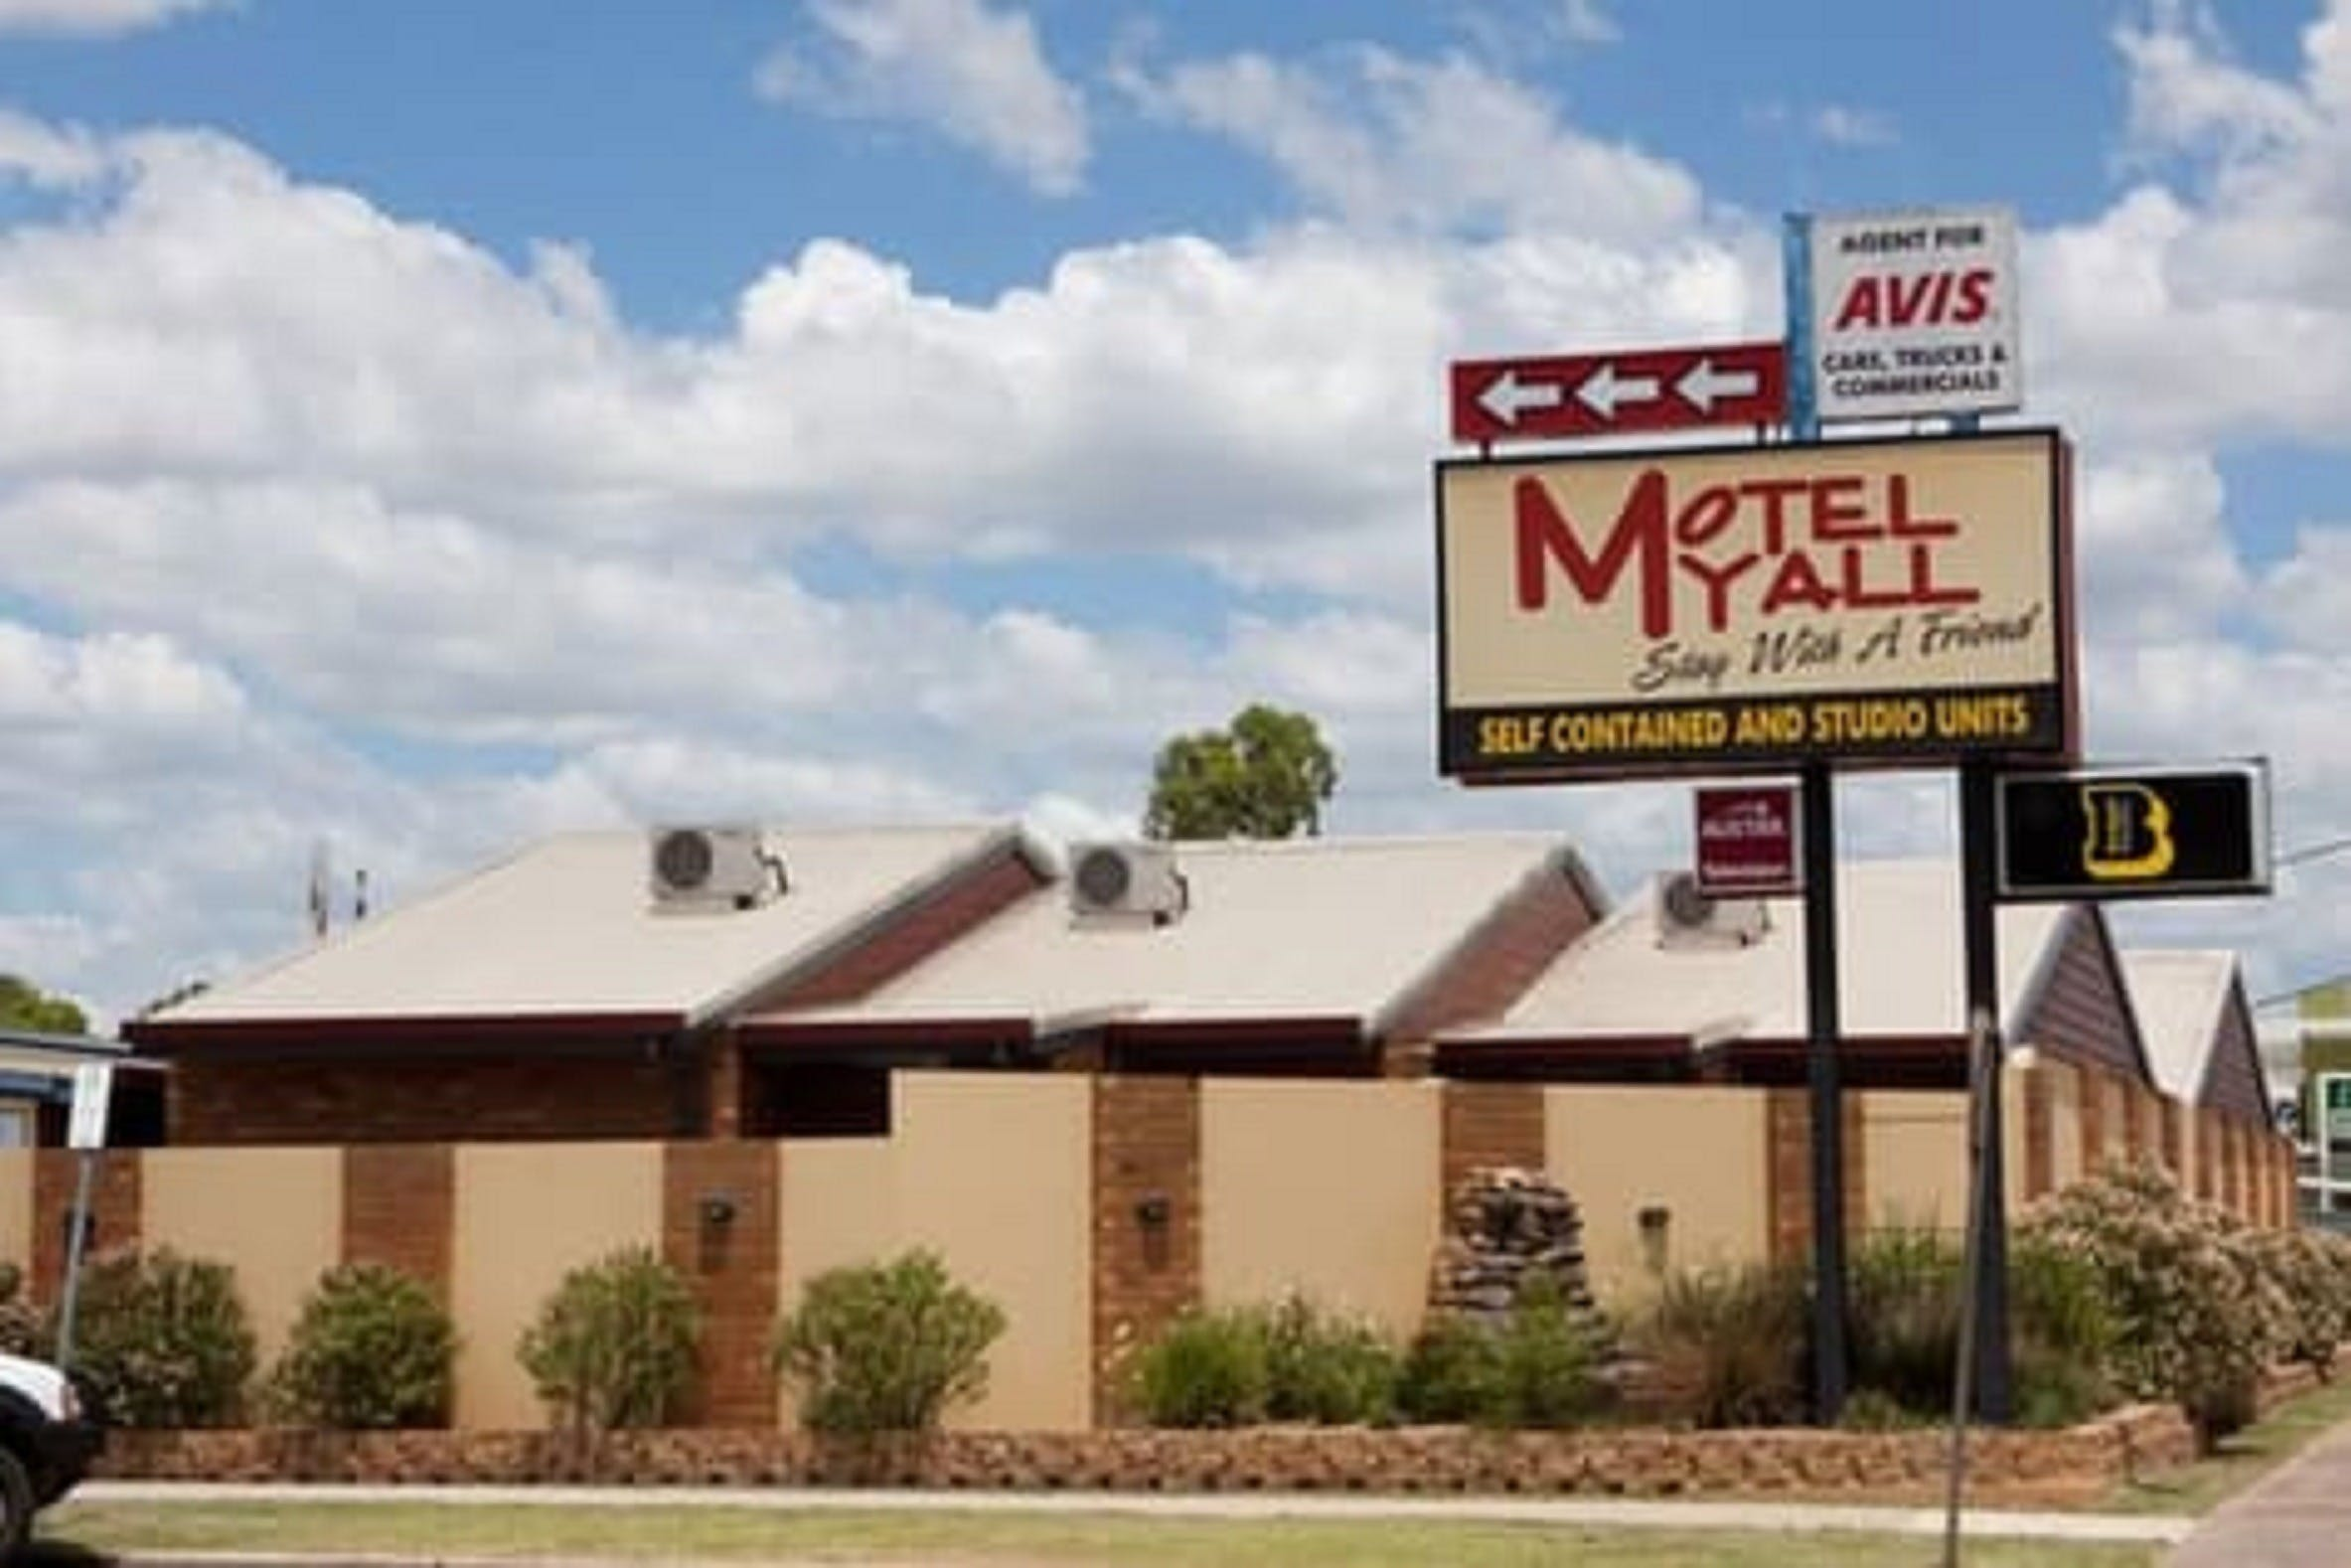 Motel Myall - Accommodation Coffs Harbour